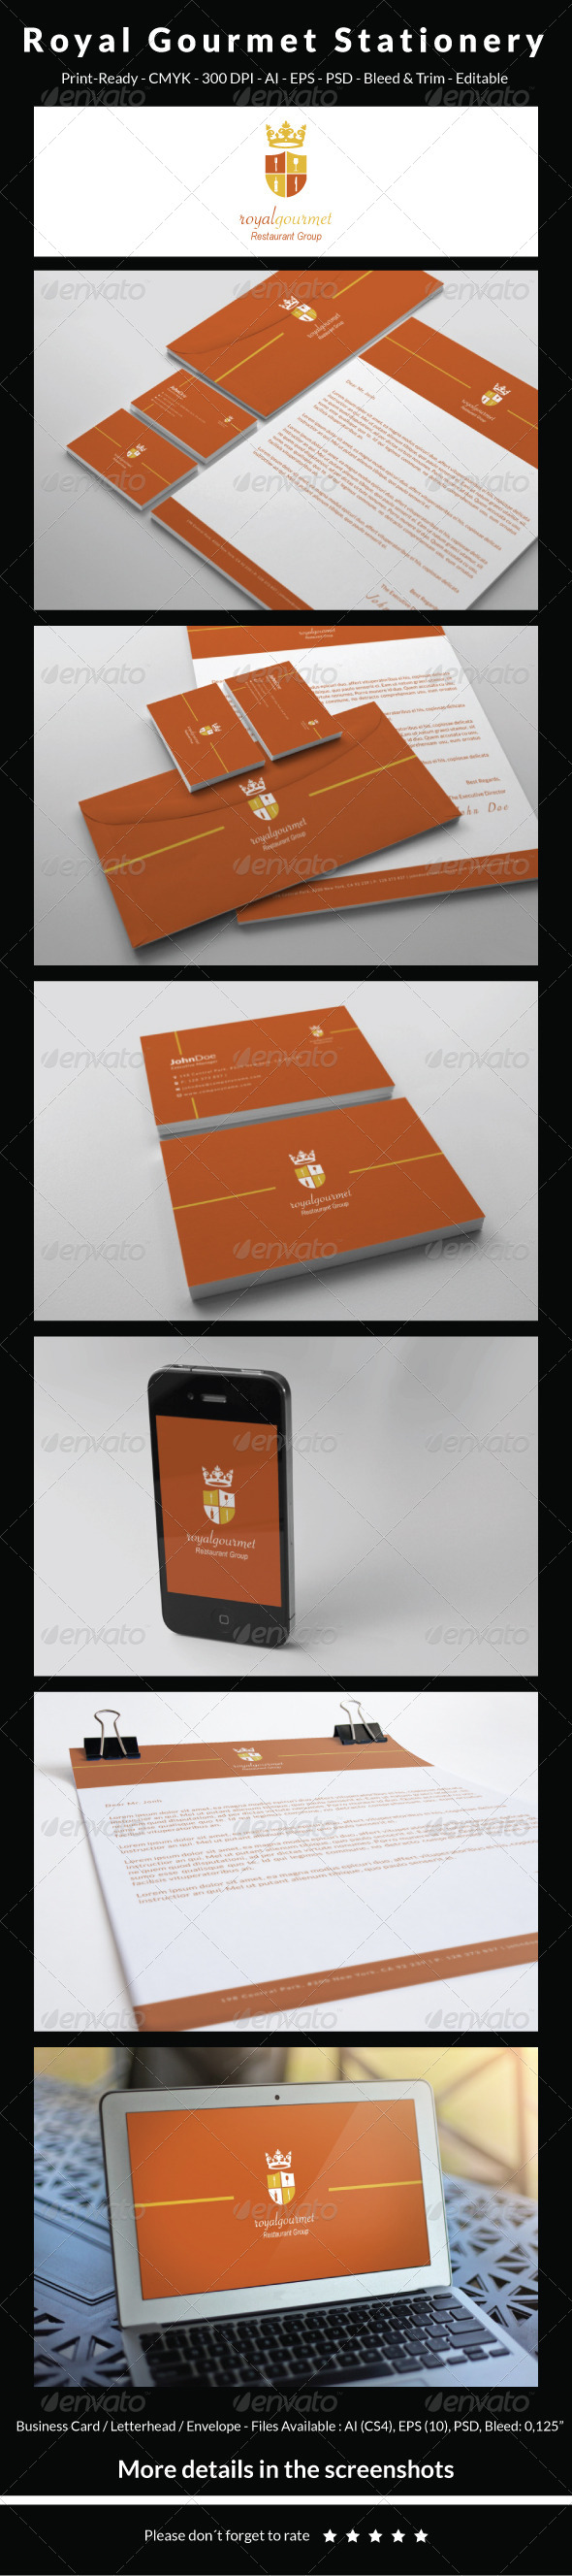 GraphicRiver Royal Gourmet Stationery 6280404